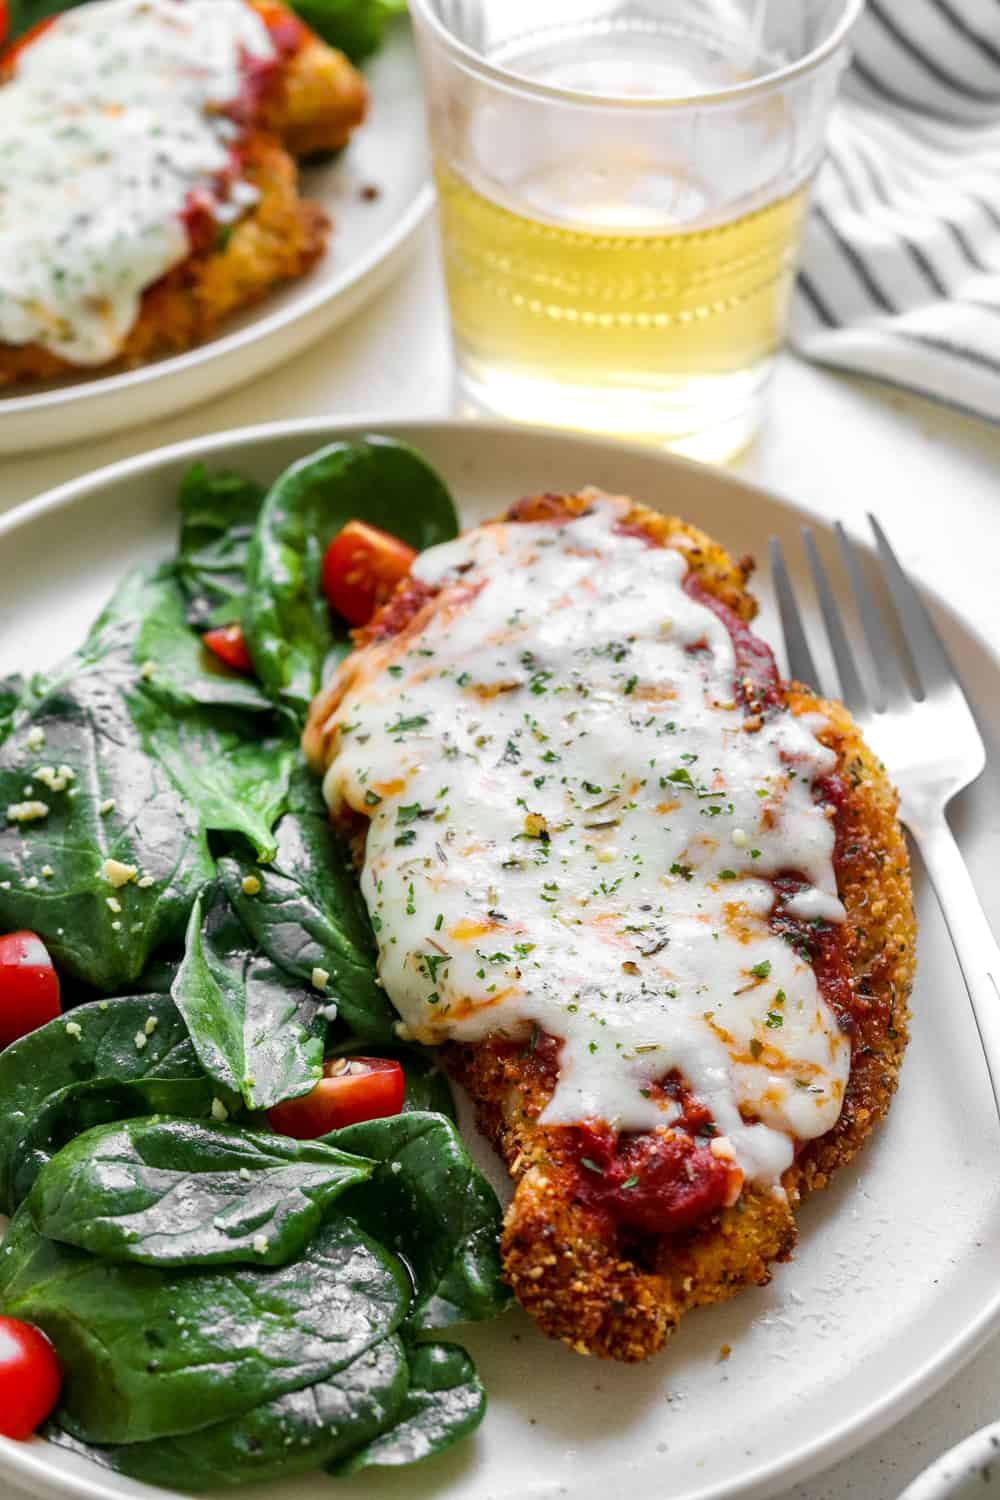 crispy chicken Parmesan on a round plate next to green spinach with a fork on the side of the plate